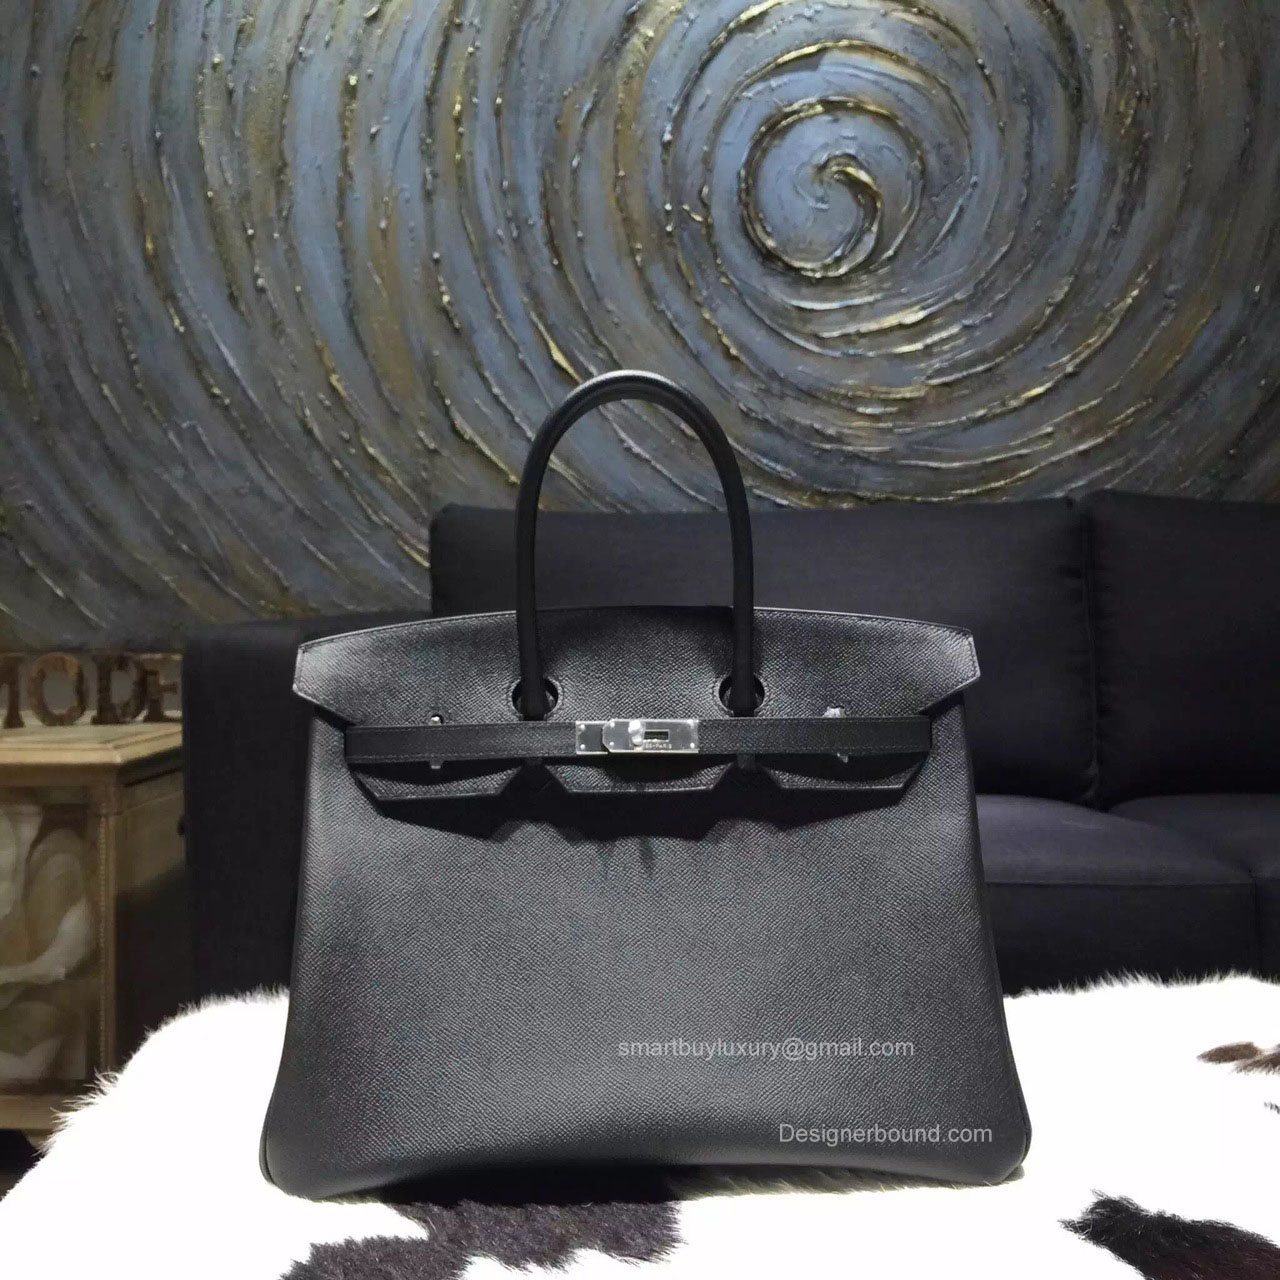 Hermes Birkin 35 cm Black Epsom Leather Bag Handstitched Silver Hw